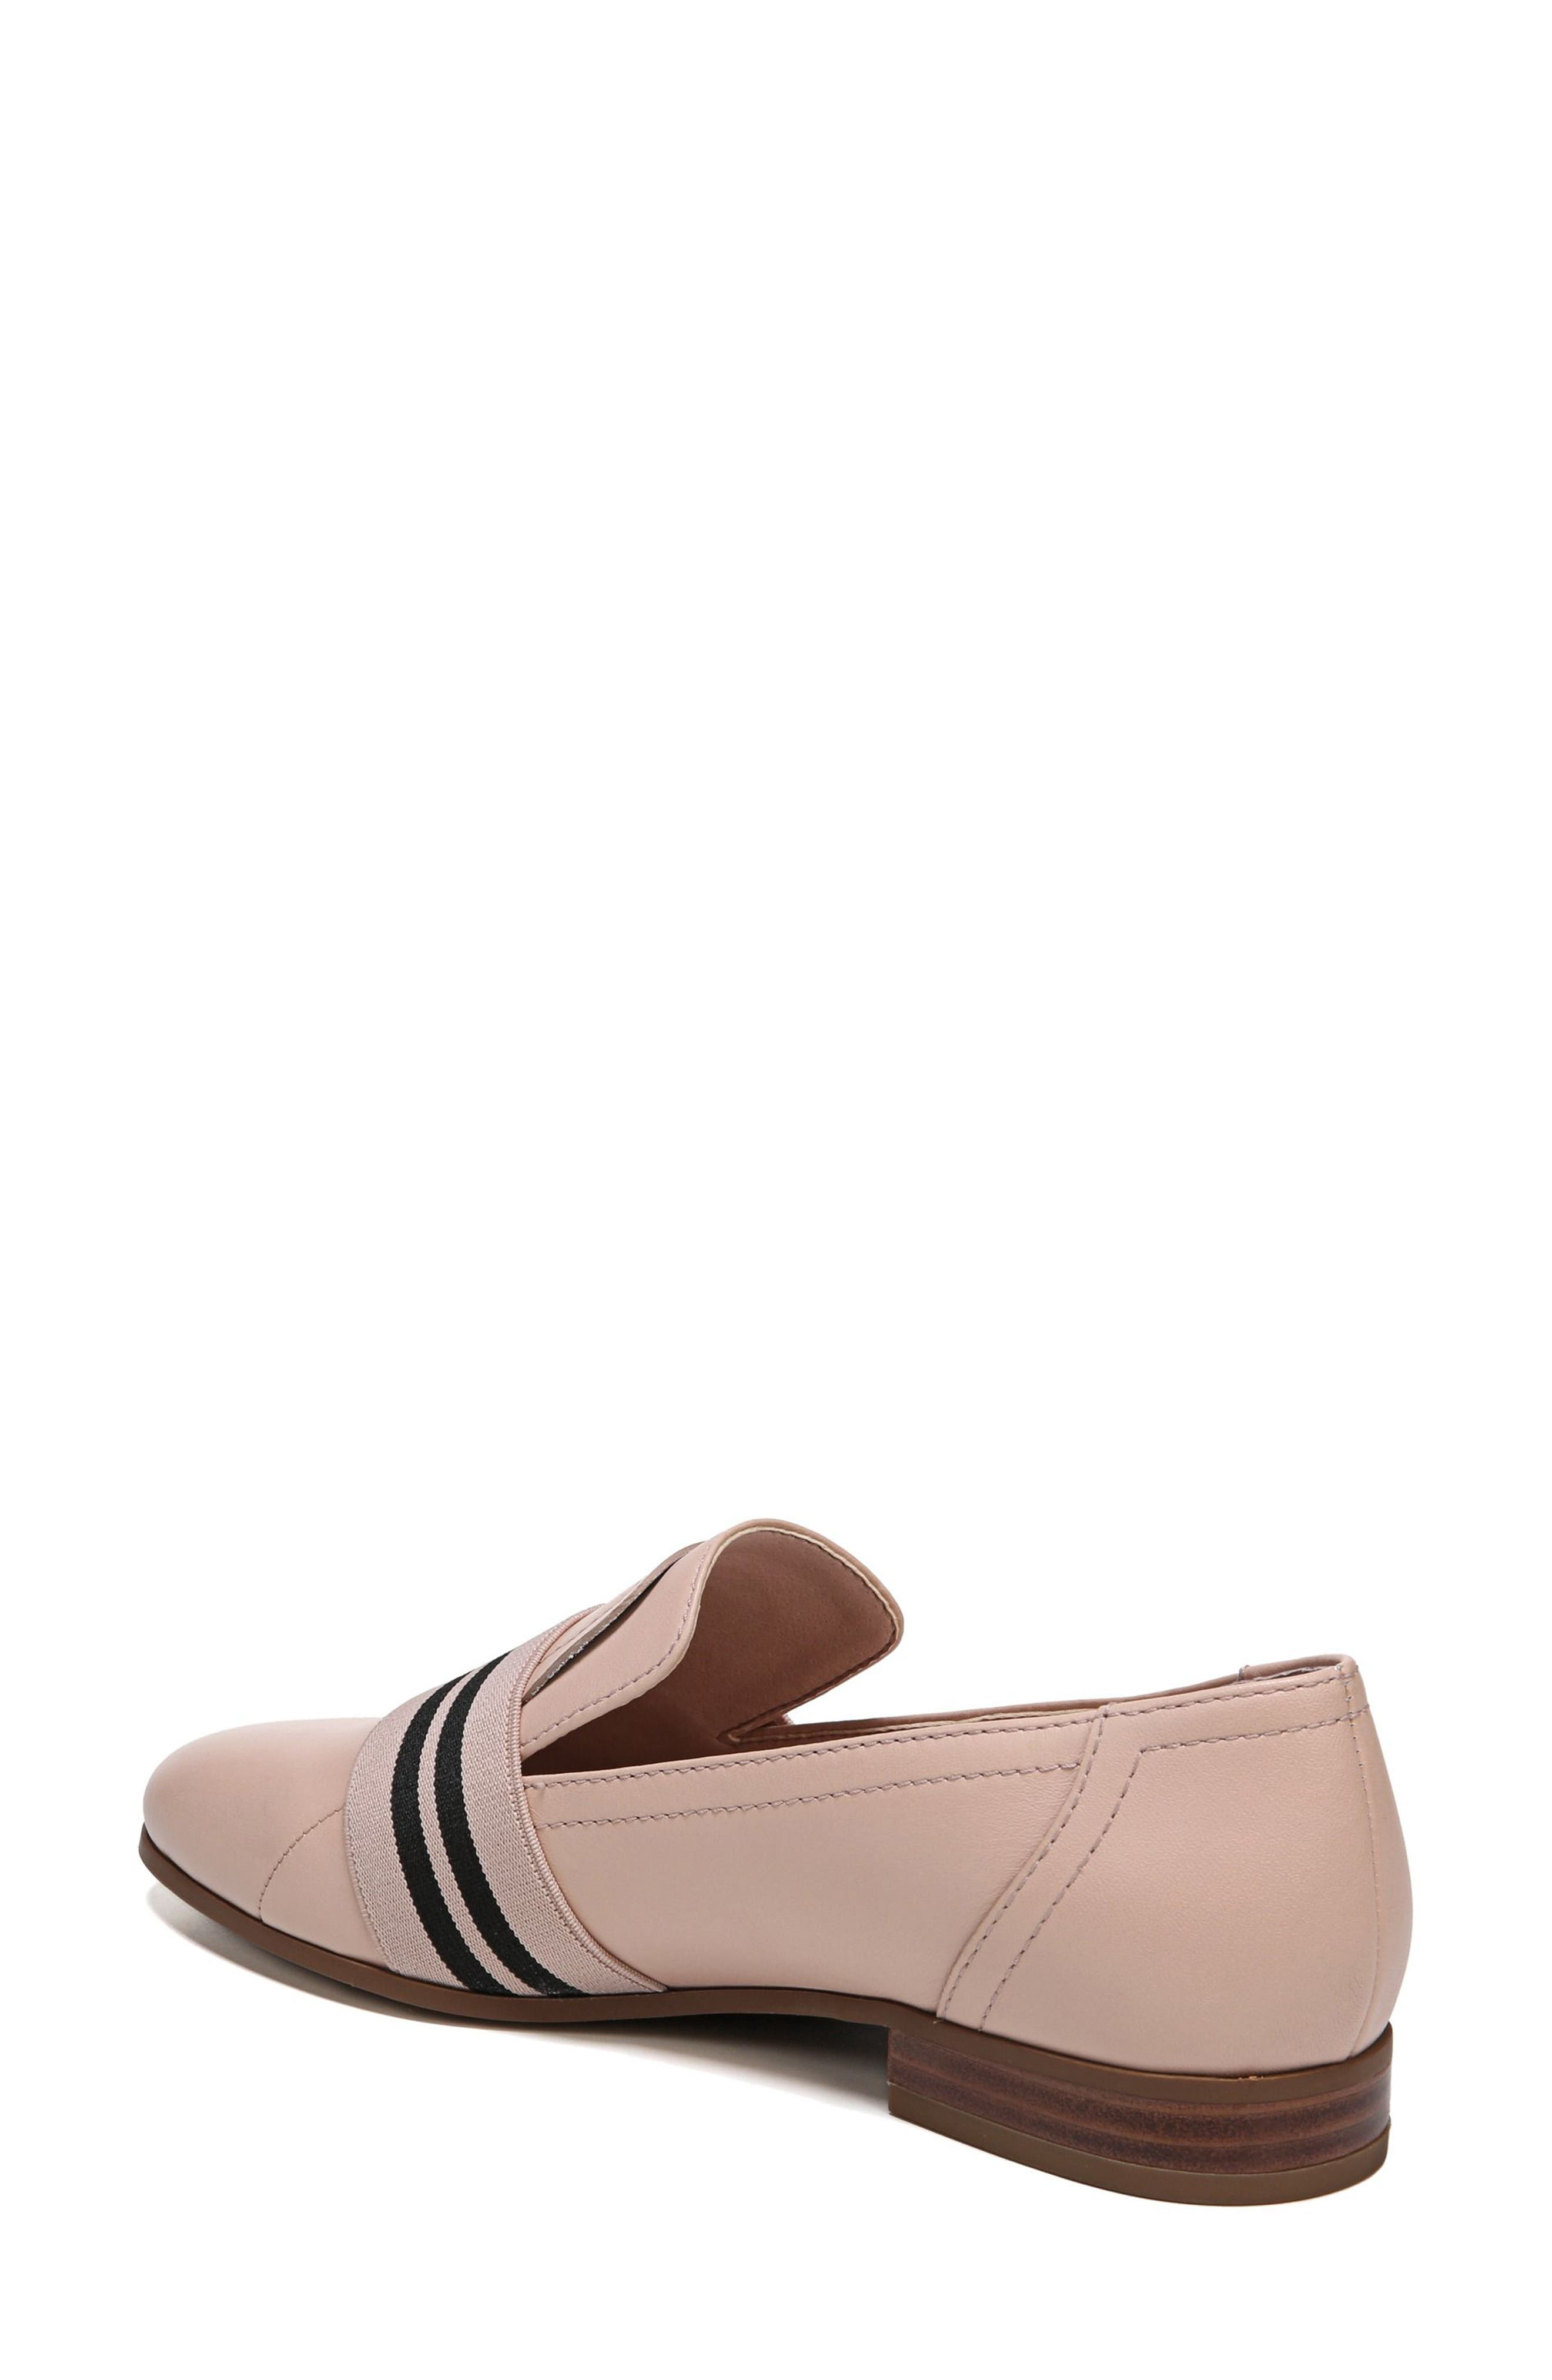 Odyssey Loafer,                             Alternate thumbnail 2, color,                             Blush Leather